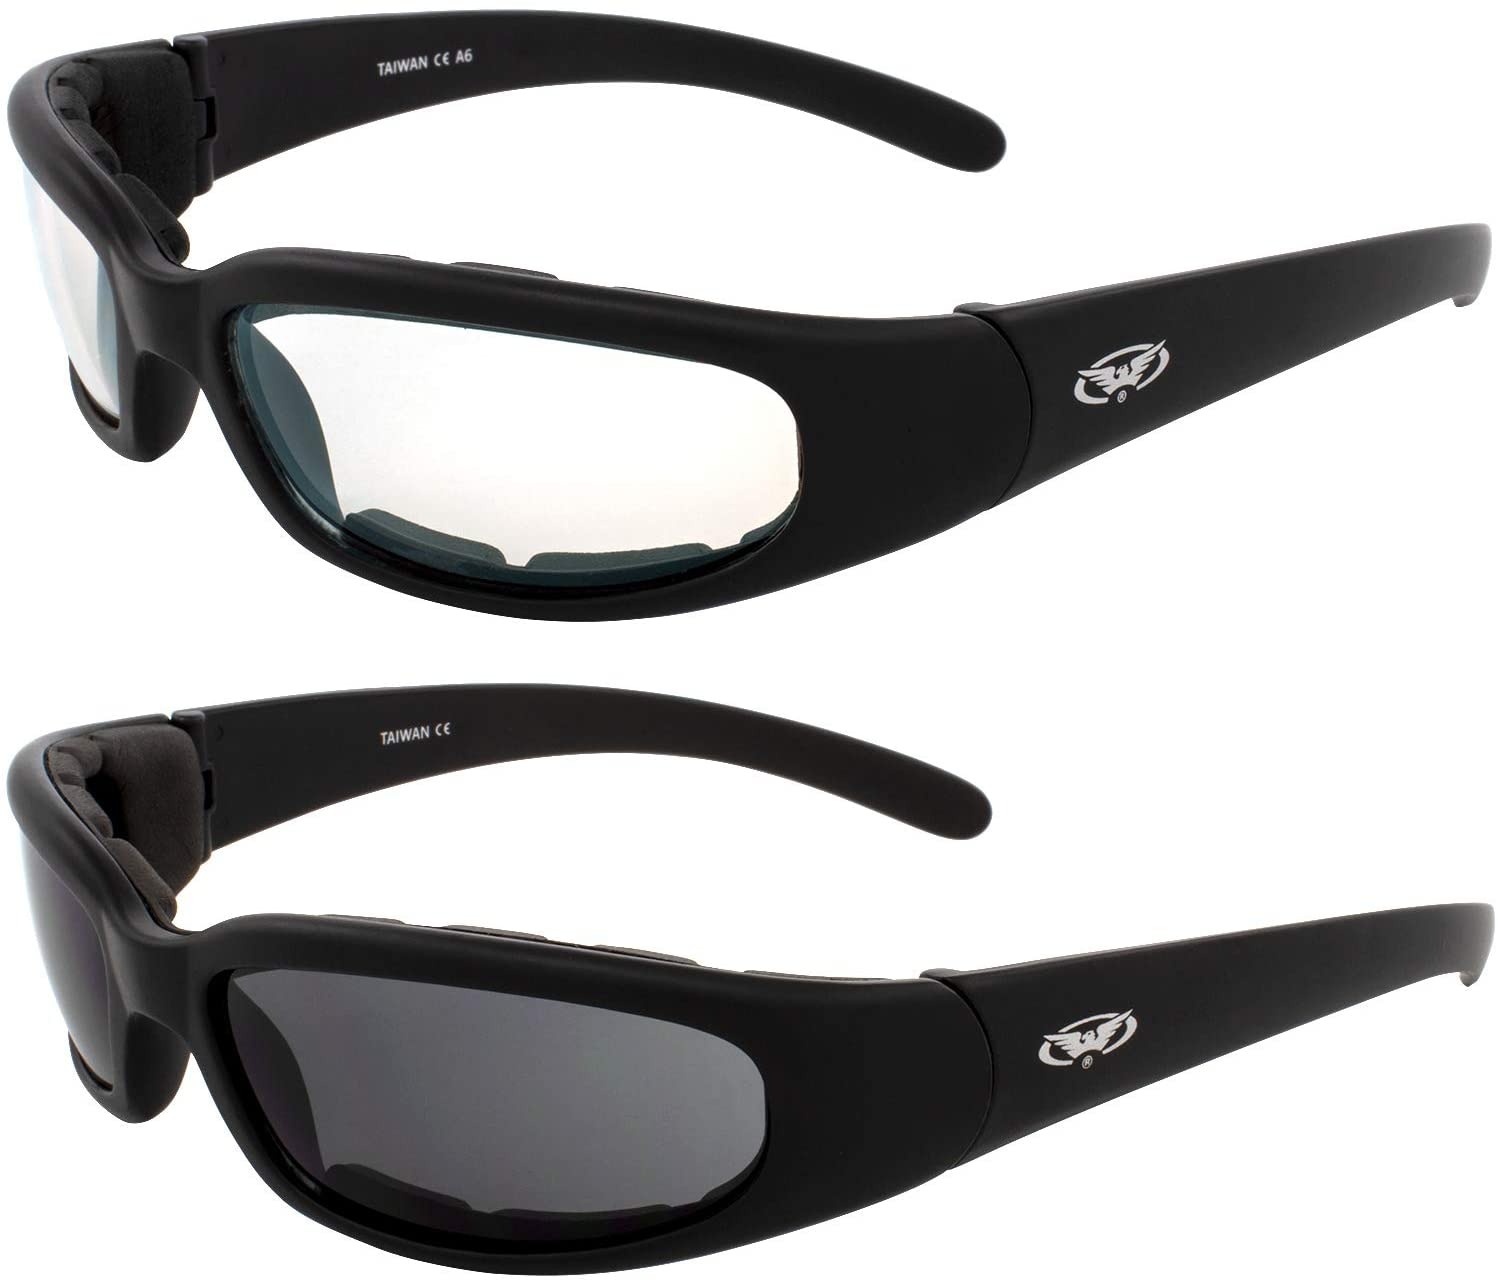 2 Pairs of Global Vision Chicago Padded Motorcycle Riding Sunglasses Black Frames Clear + Smoke Lenses